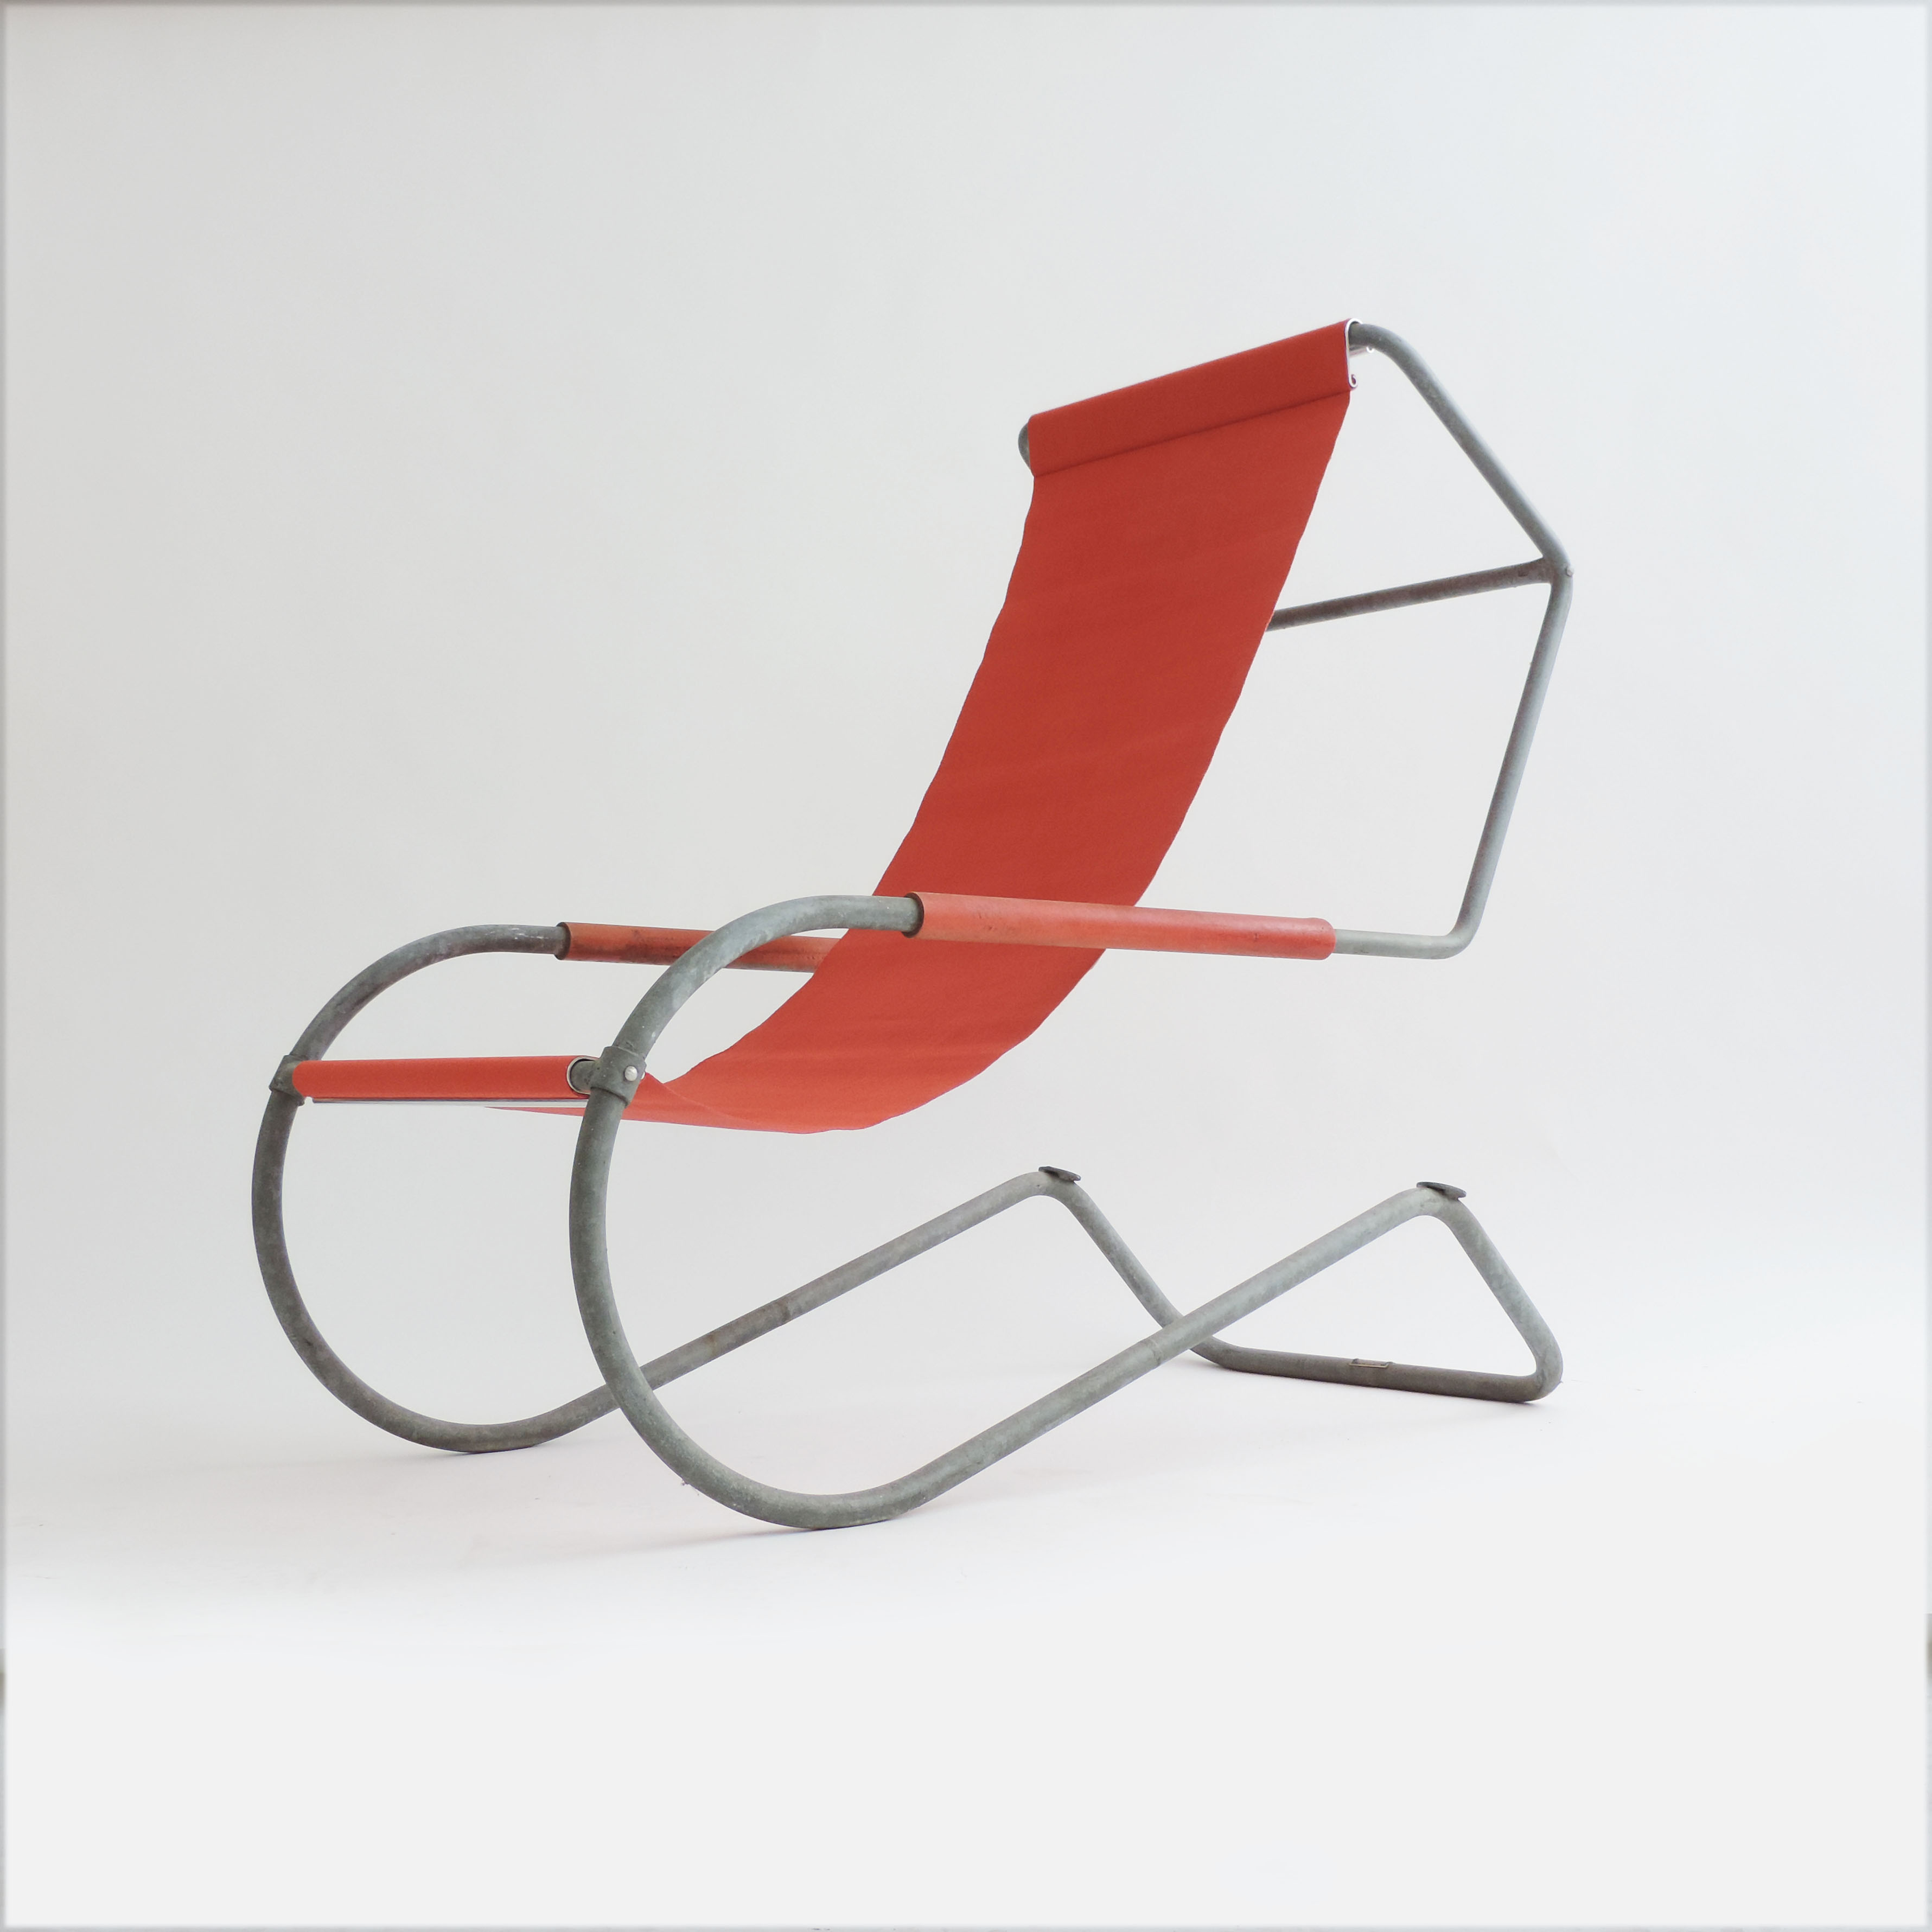 Pair of Lido Lounge Chairs by Battista Giudici